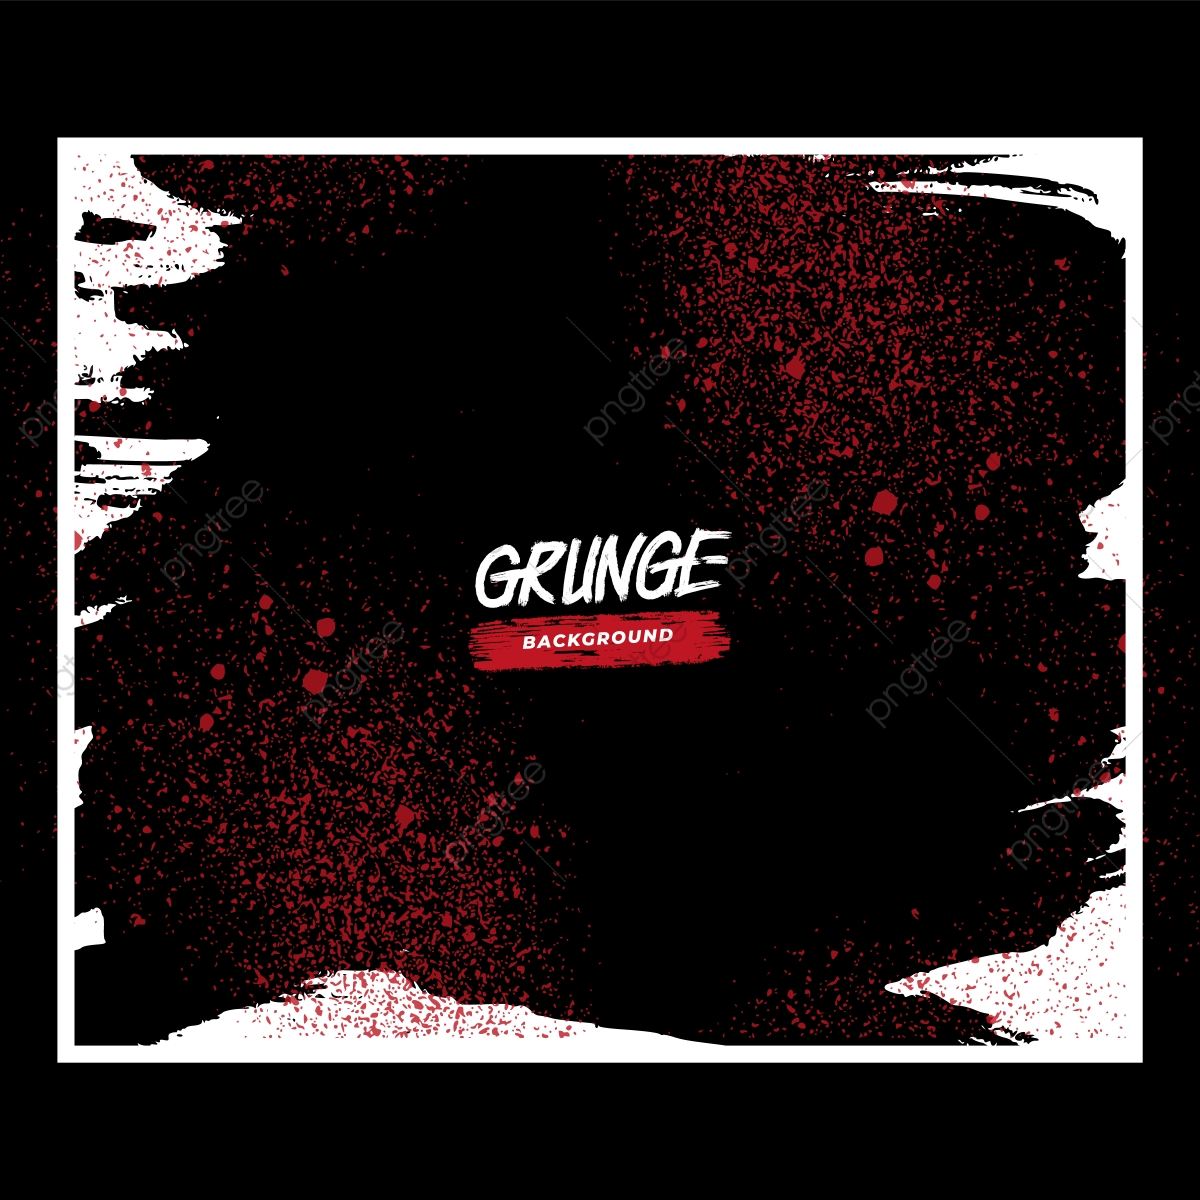 Abstract Black Gritty Grunge Background Grunge Texture Background Png And Vector With Transparent Background For Free Download